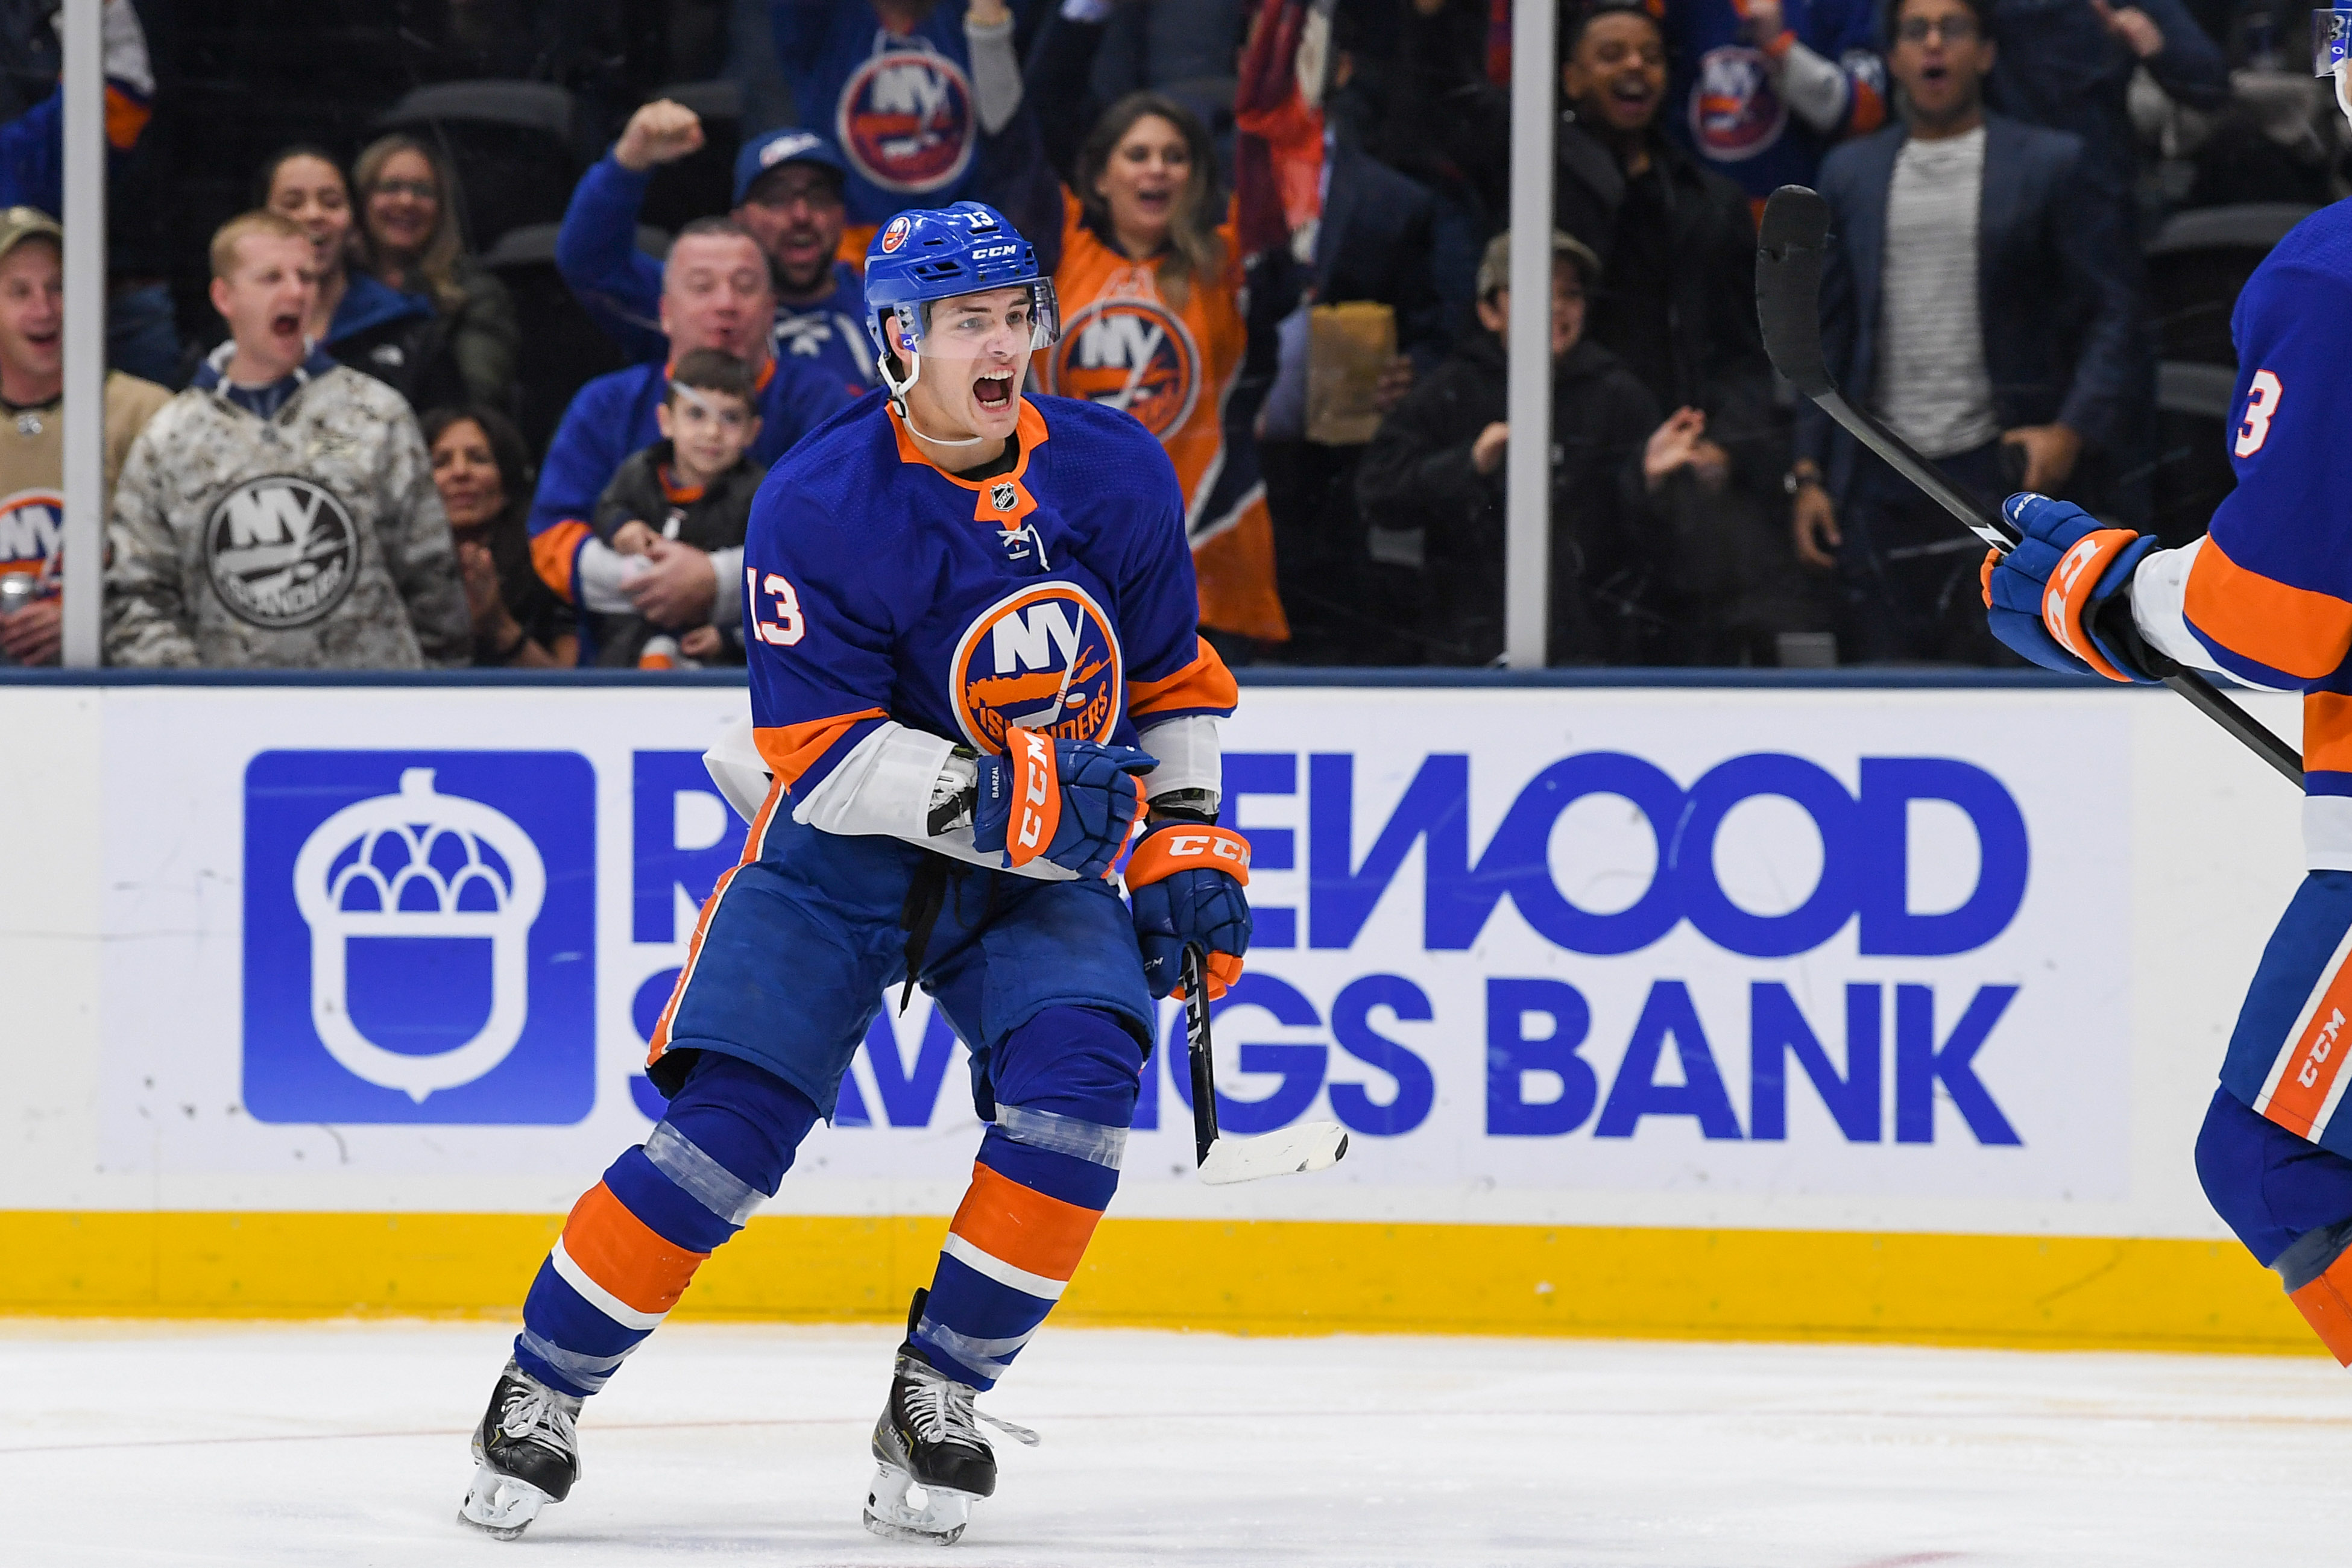 Nov 1, 2019; Uniondale, NY, USA; New York Islanders center Mathew Barzal (13) celebrates his goal against the Tampa Bay Lightning during the second period at Nassau Veterans Memorial Coliseum. Mandatory Credit: Dennis Schneidler-USA TODAY Sports